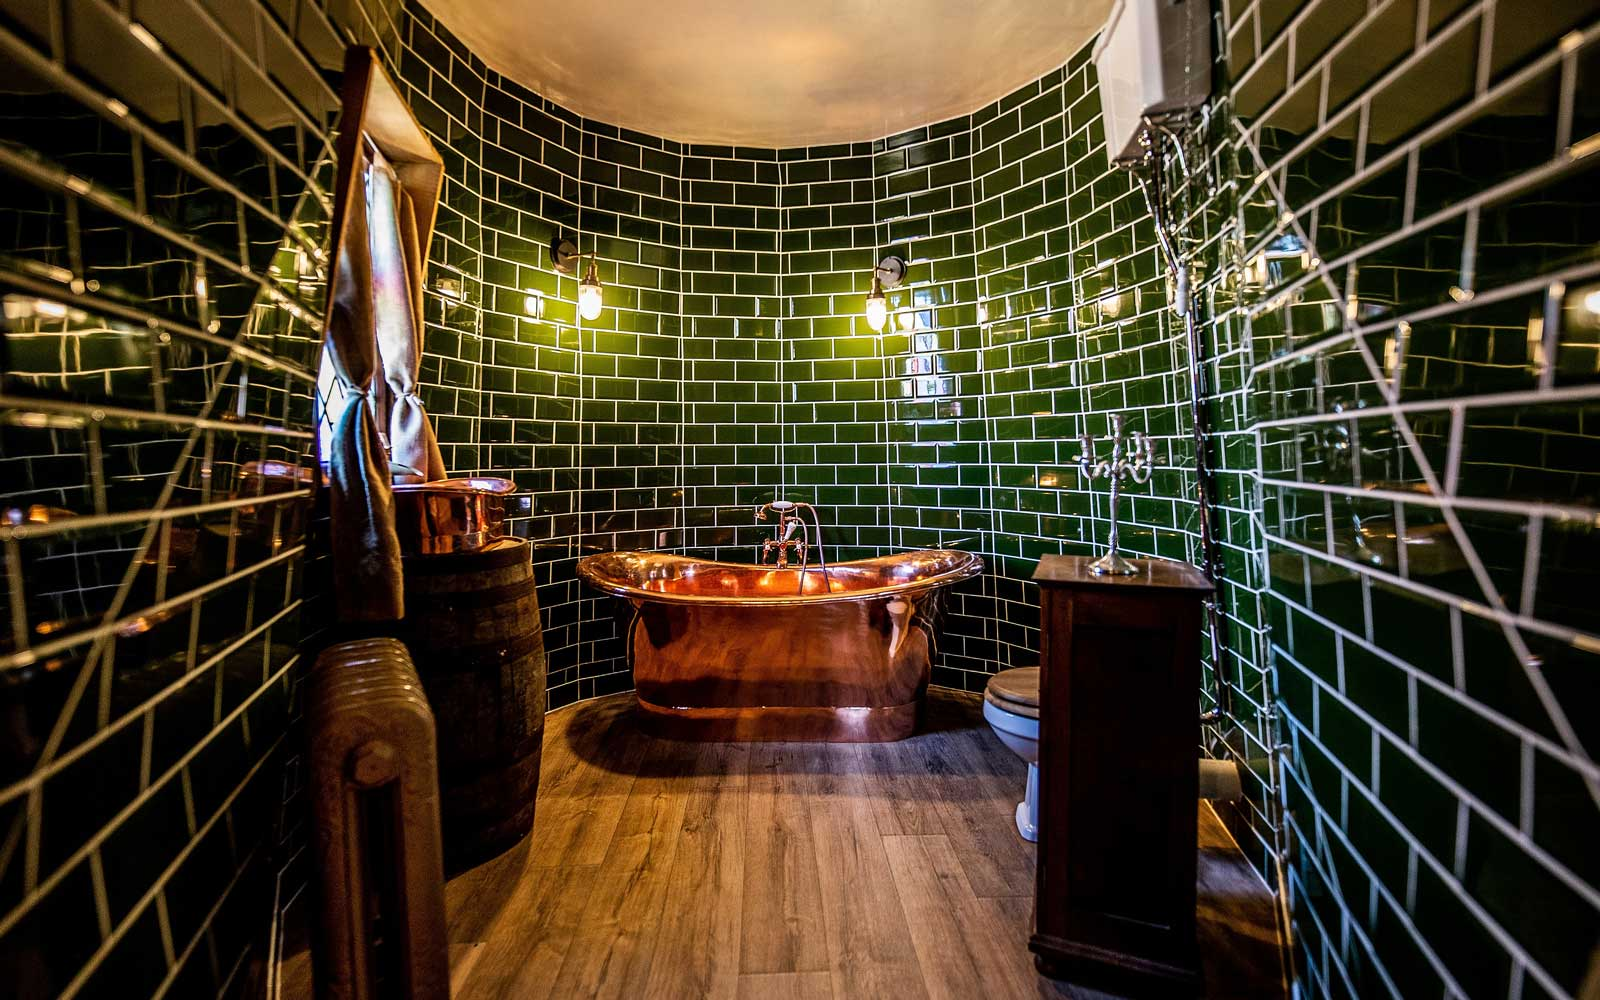 Picture Shows Bath Room Holiday home inspired by Harry PotterÕs HagridÕs Hut opens on the North York Moors Harry Potter fans can now rent a holiday cottage inspired by the fictional home of one of the booksÕ main characters, Rubeus Hagrid. The GroundkeeperÕs Cottage has just opened at North Shire near Saltburn on the edge of the North York Moors National Park, inspired by the film portrayal of HagridÕs Hut in the Harry Potter novels. The opening comes just ahead of International Harry Potter Day (2 May). The cottage comprises three interlocking circular slate-roofed buildings, two with turrets, and all with stained glass windows. Guests approach the lantern-lit wooden door before stepping into the spacious open plan living space comprising galley kitchen, dining area, seating in front of a feature fireplace and wood beams festooned with Hagrid-style paraphernalia such as old baskets, ropes, leather bags and lanterns. From the living room one door leads to the circular bedroom complete with double bed and a rustic wooden bunk bed, while a second door opens onto a large bathroom where the star feature is a huge freestanding copper bath. The owner Carol Cavendish, who has been a Harry Potter fan since her early 20s, has also incorporated small touches such as an ink bottle and quill and bespoke copper basin in the bathroom. However whereas Hagrid would have lived relatively frugally, guests staying in GroundkeeperÕs cottage wonÕt have to skimp on lifeÕs luxuries as two comfy sofas in the living room together with sleigh bed and high quality mattresses on the bunk bed make it more of a cosy, comfortable retreat. The cottage, which is available for rent from £195 per night, sleeps up to six (four in the bedroom and two on a sofabed). For those who want to bring their own Fang, one well-behaved dog is also allowed at a small extra cost. This is the next stage in North ShireÕs vision to create a storybook fantasy world for guests. Back in